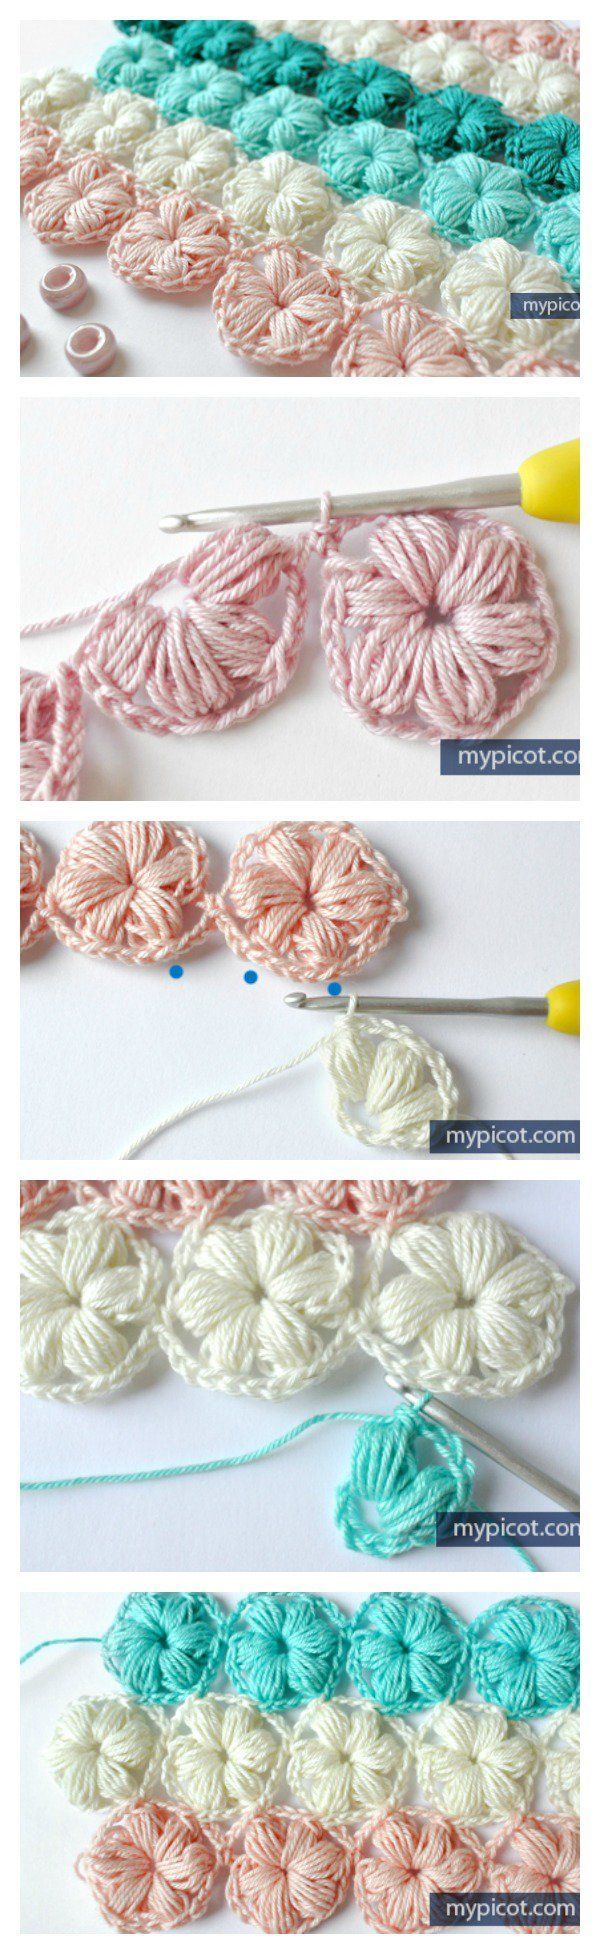 Crochet Flower Puff Stitch Free Pattern for puff stitch